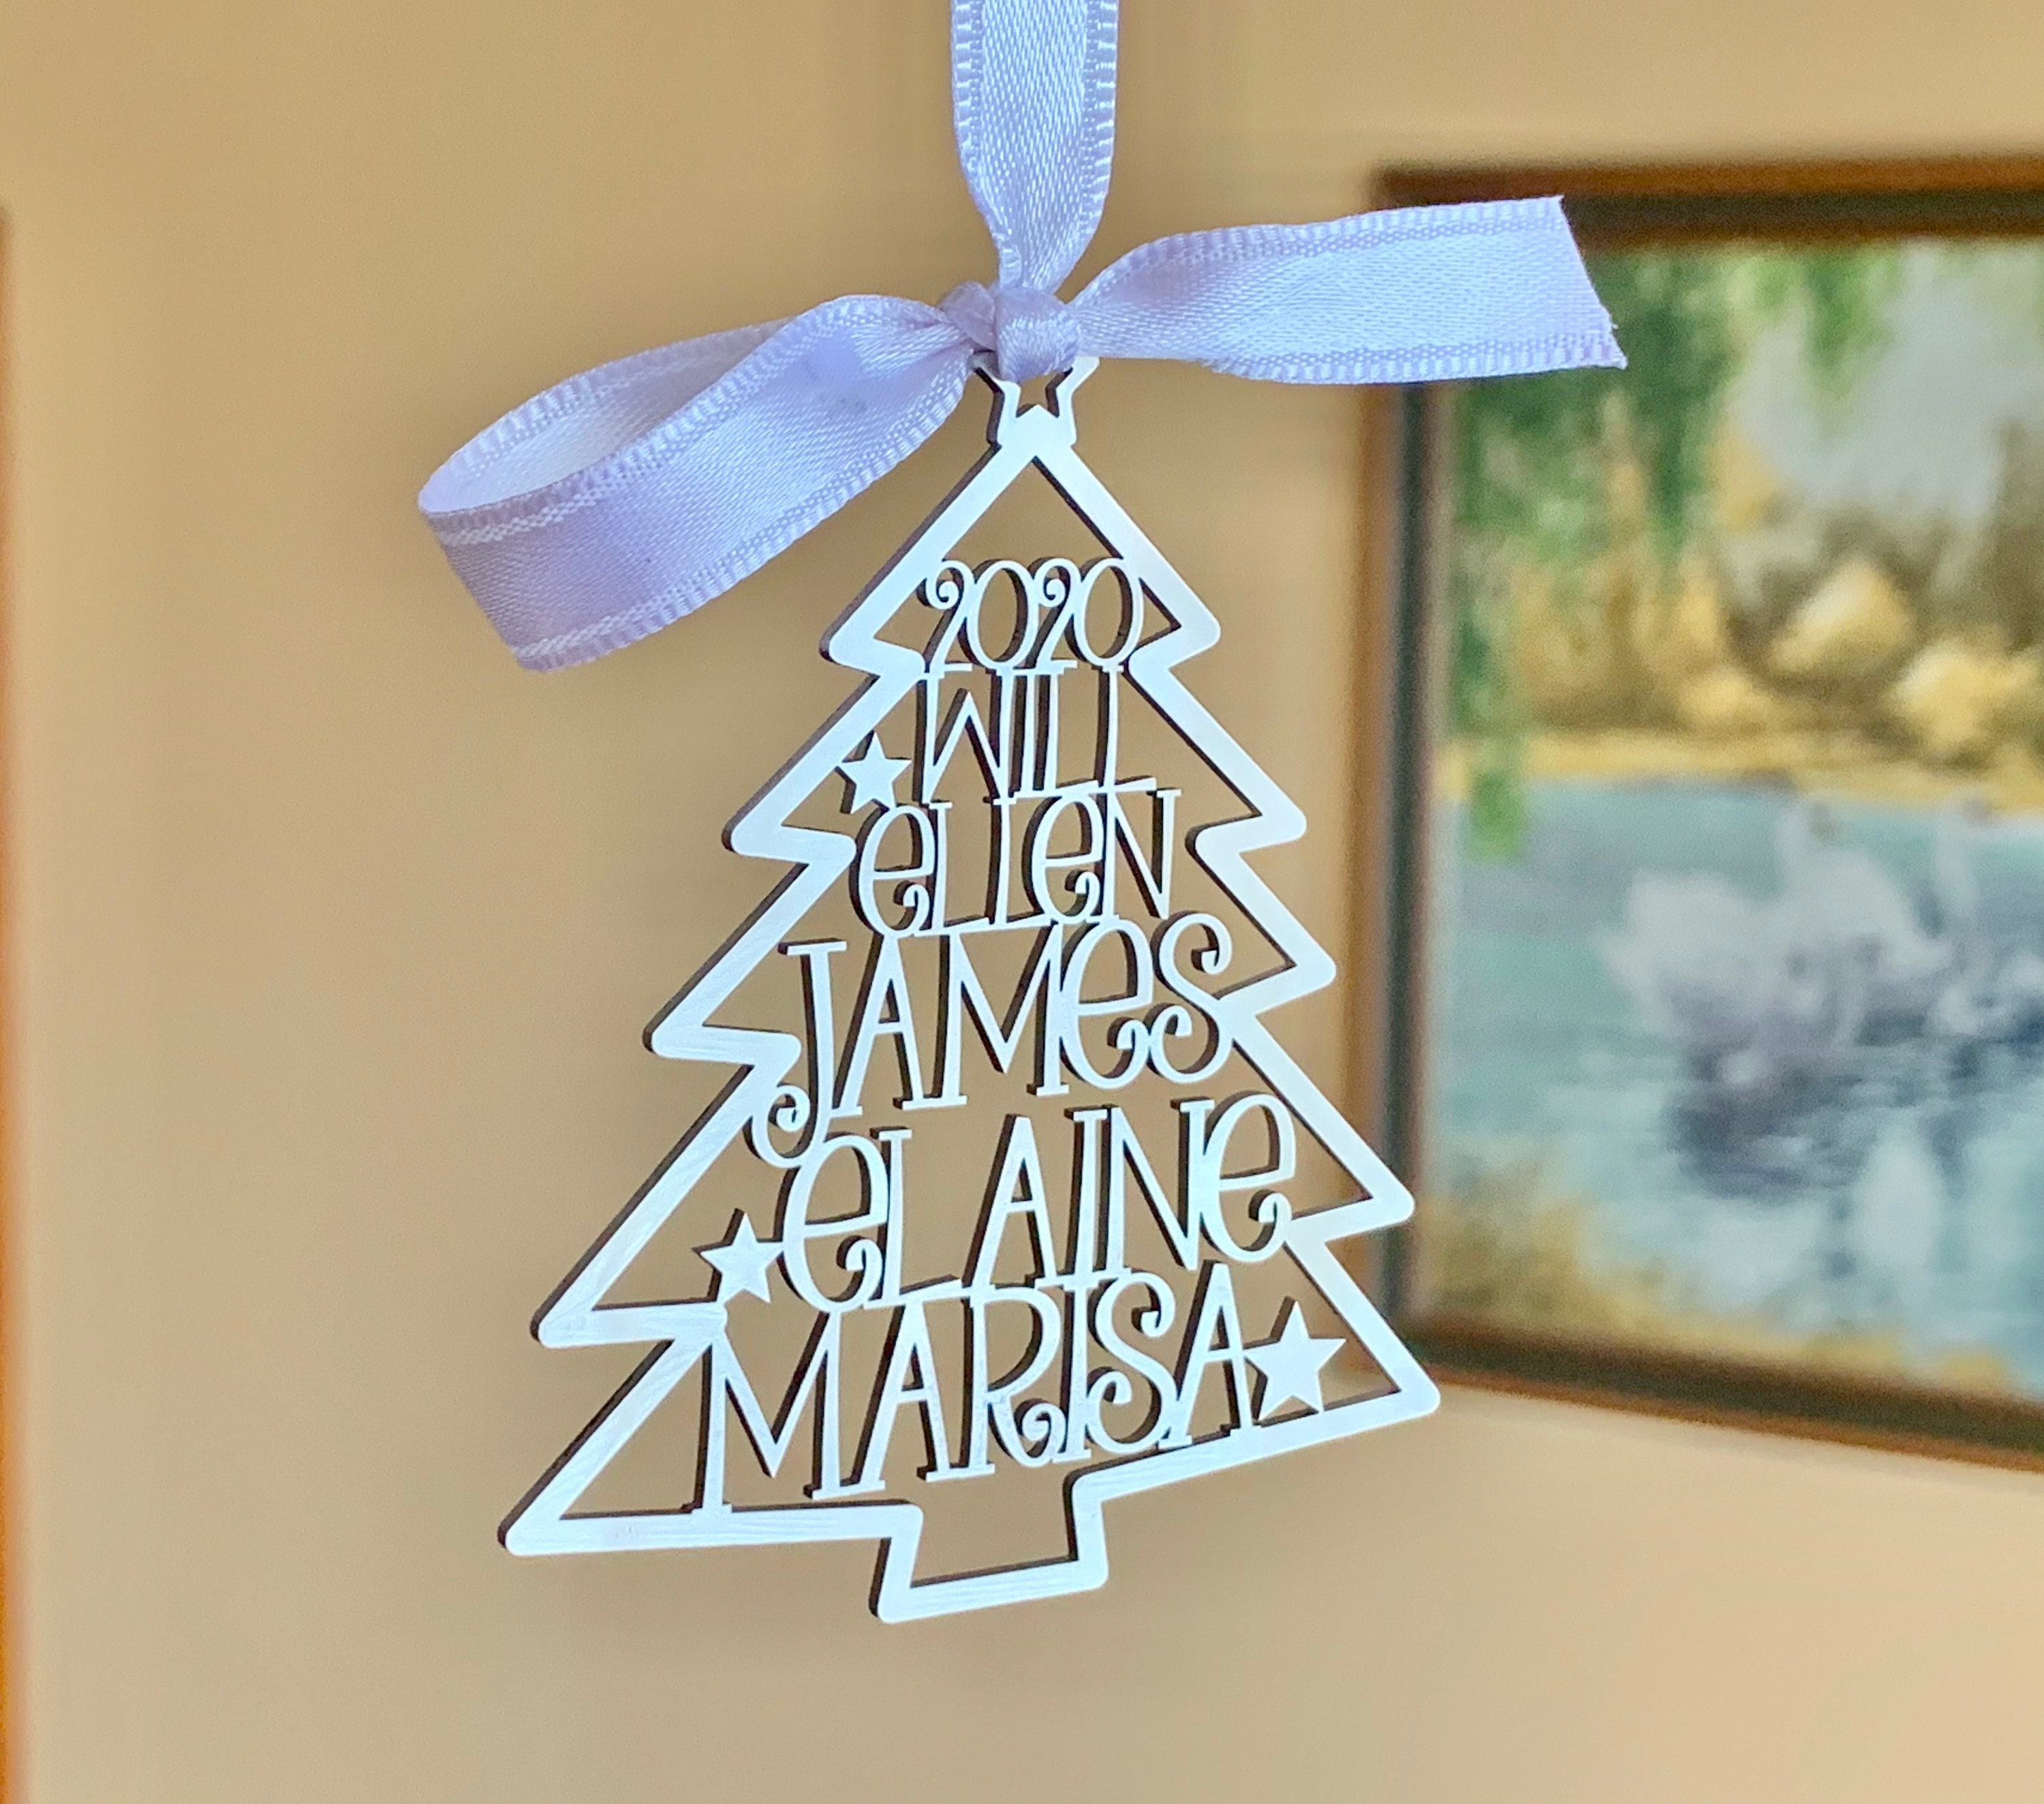 Popular Custom Made Christmas Gifts For 2021 Personalized 2021 Christmas Tree Ornaments Custom Family Names Laser Cut Holiday Gift Happy New Year 2022 Xmas Silver Hanging Tag Kids Names